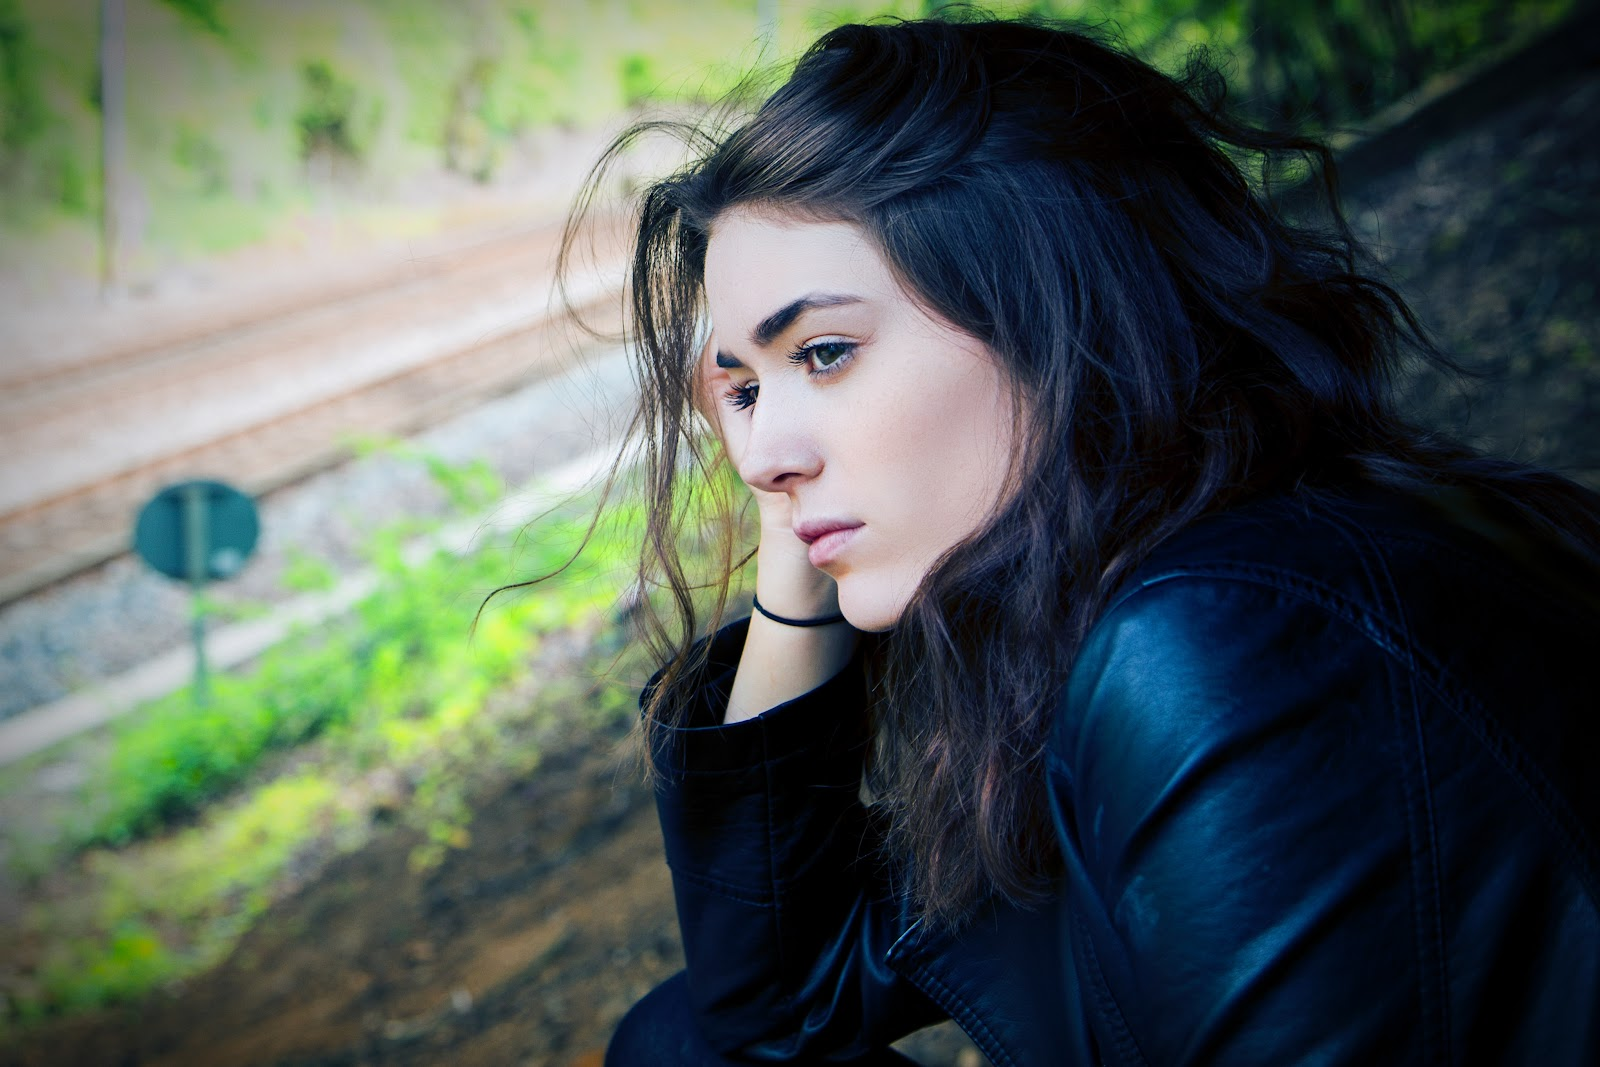 What triggers a person with borderline personality disorder?